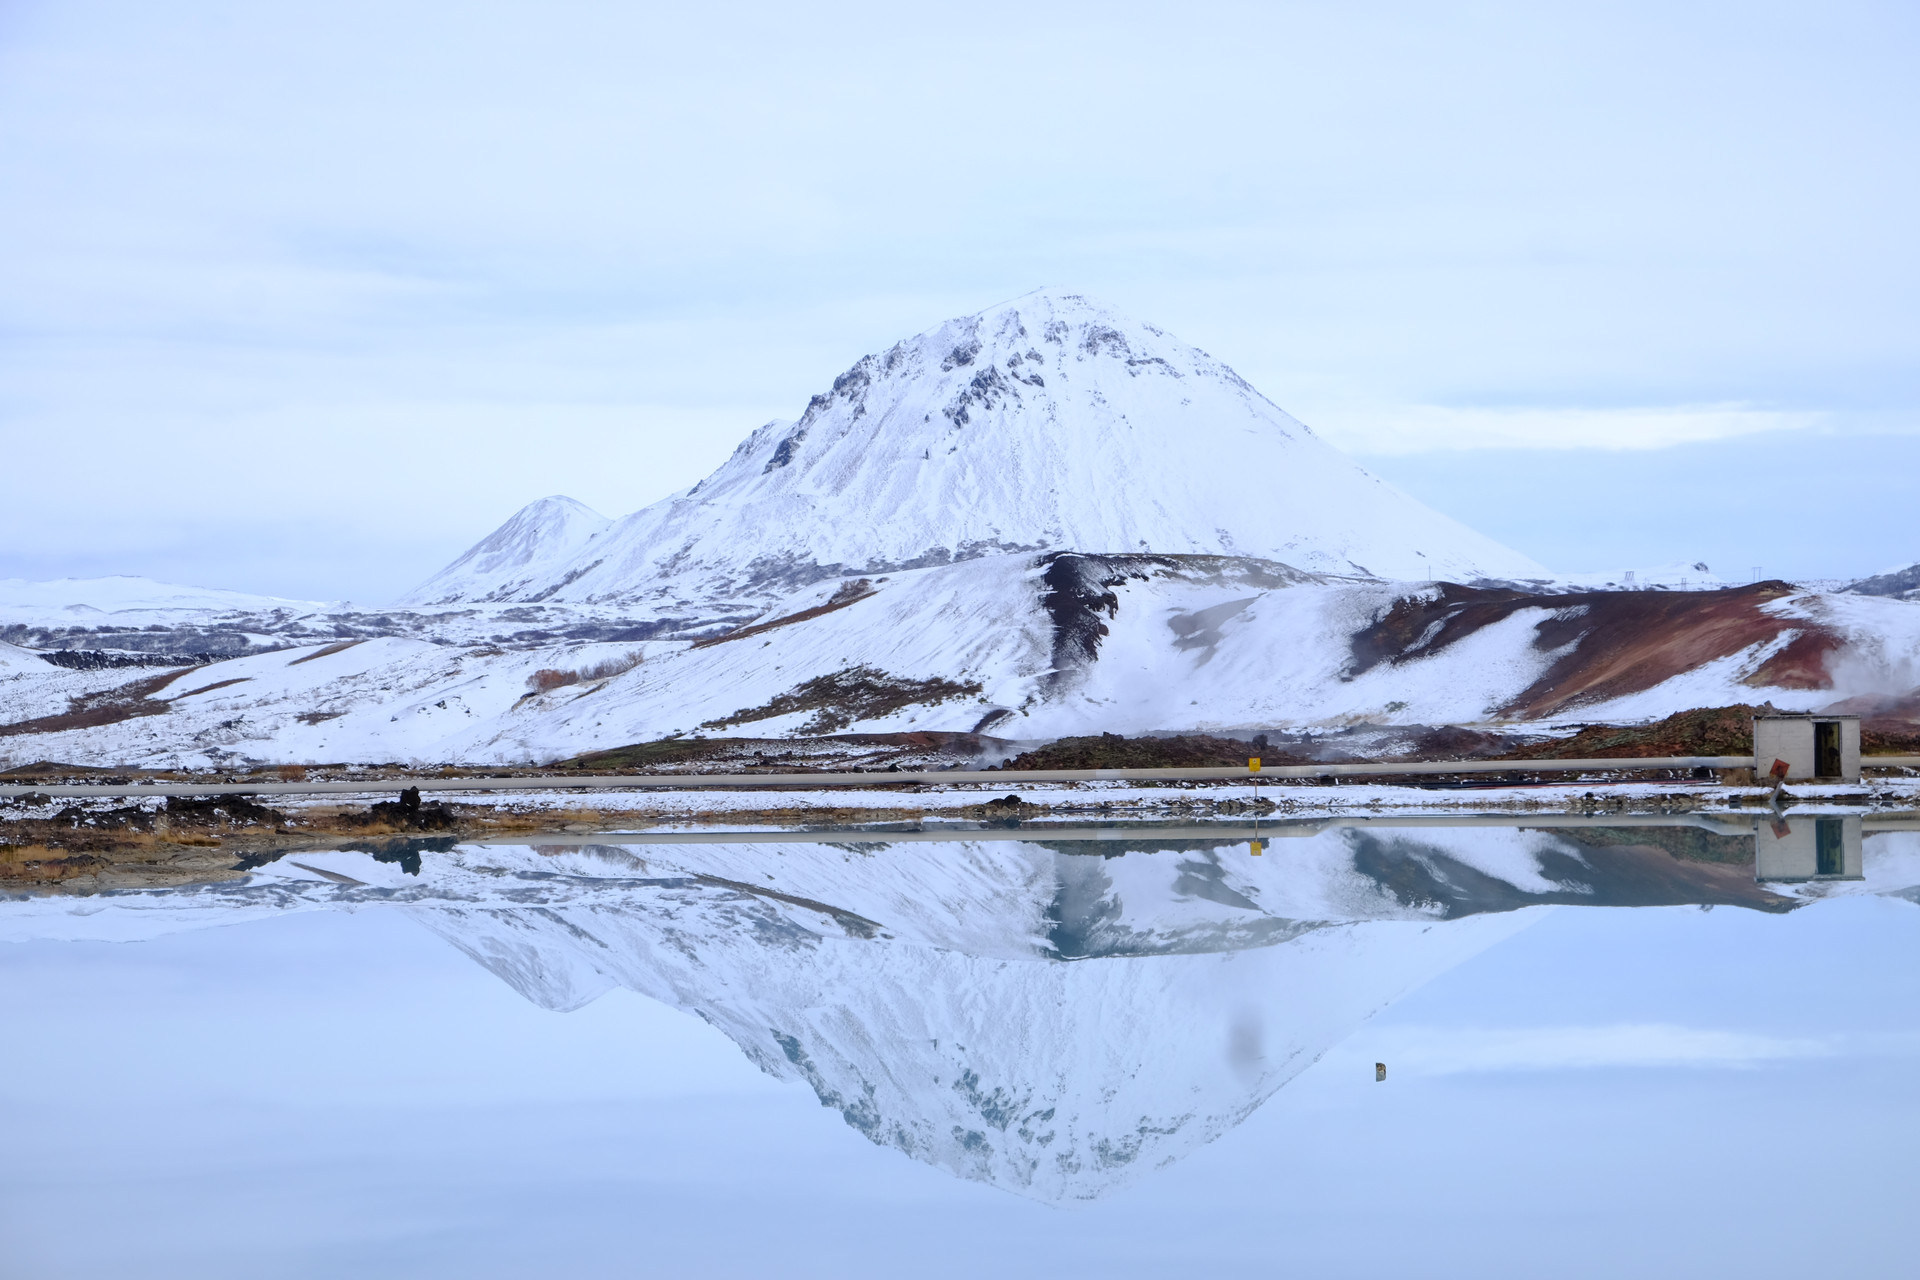 snow at Mývatn lake, Iceland